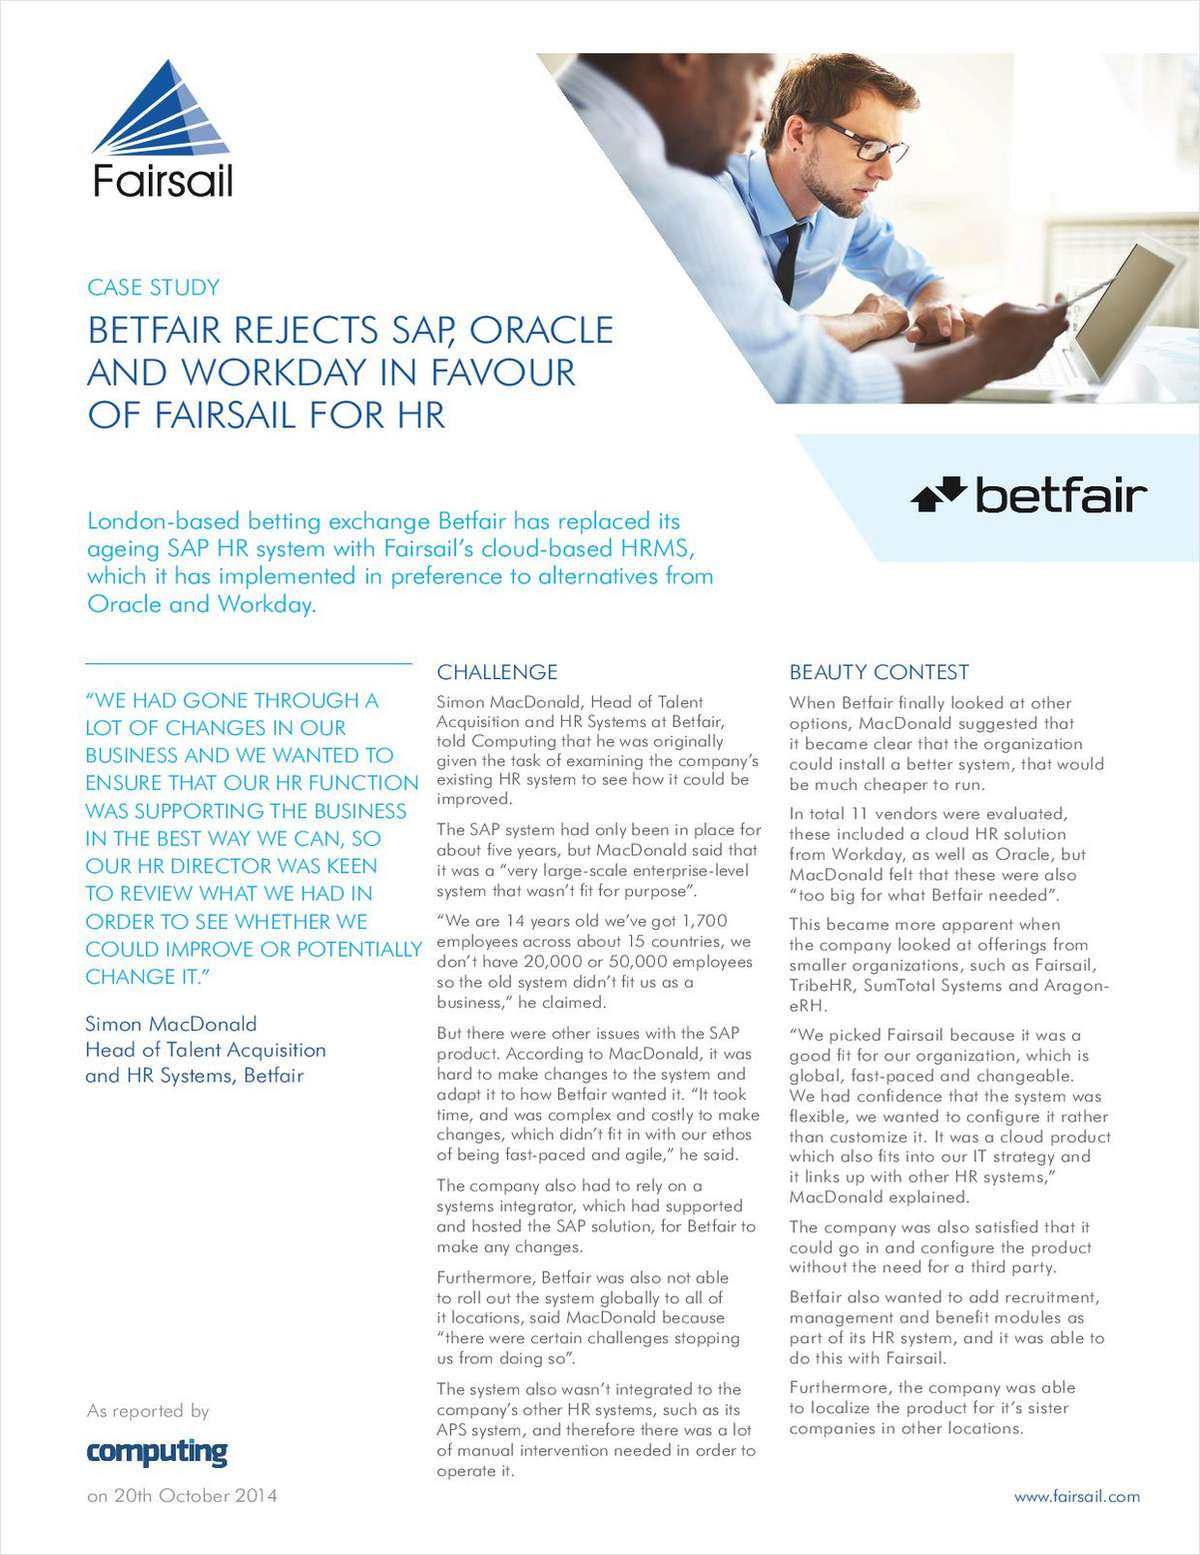 Betfair Rejects SAP, Oracle and Workday in Favour of Fairsail for HR